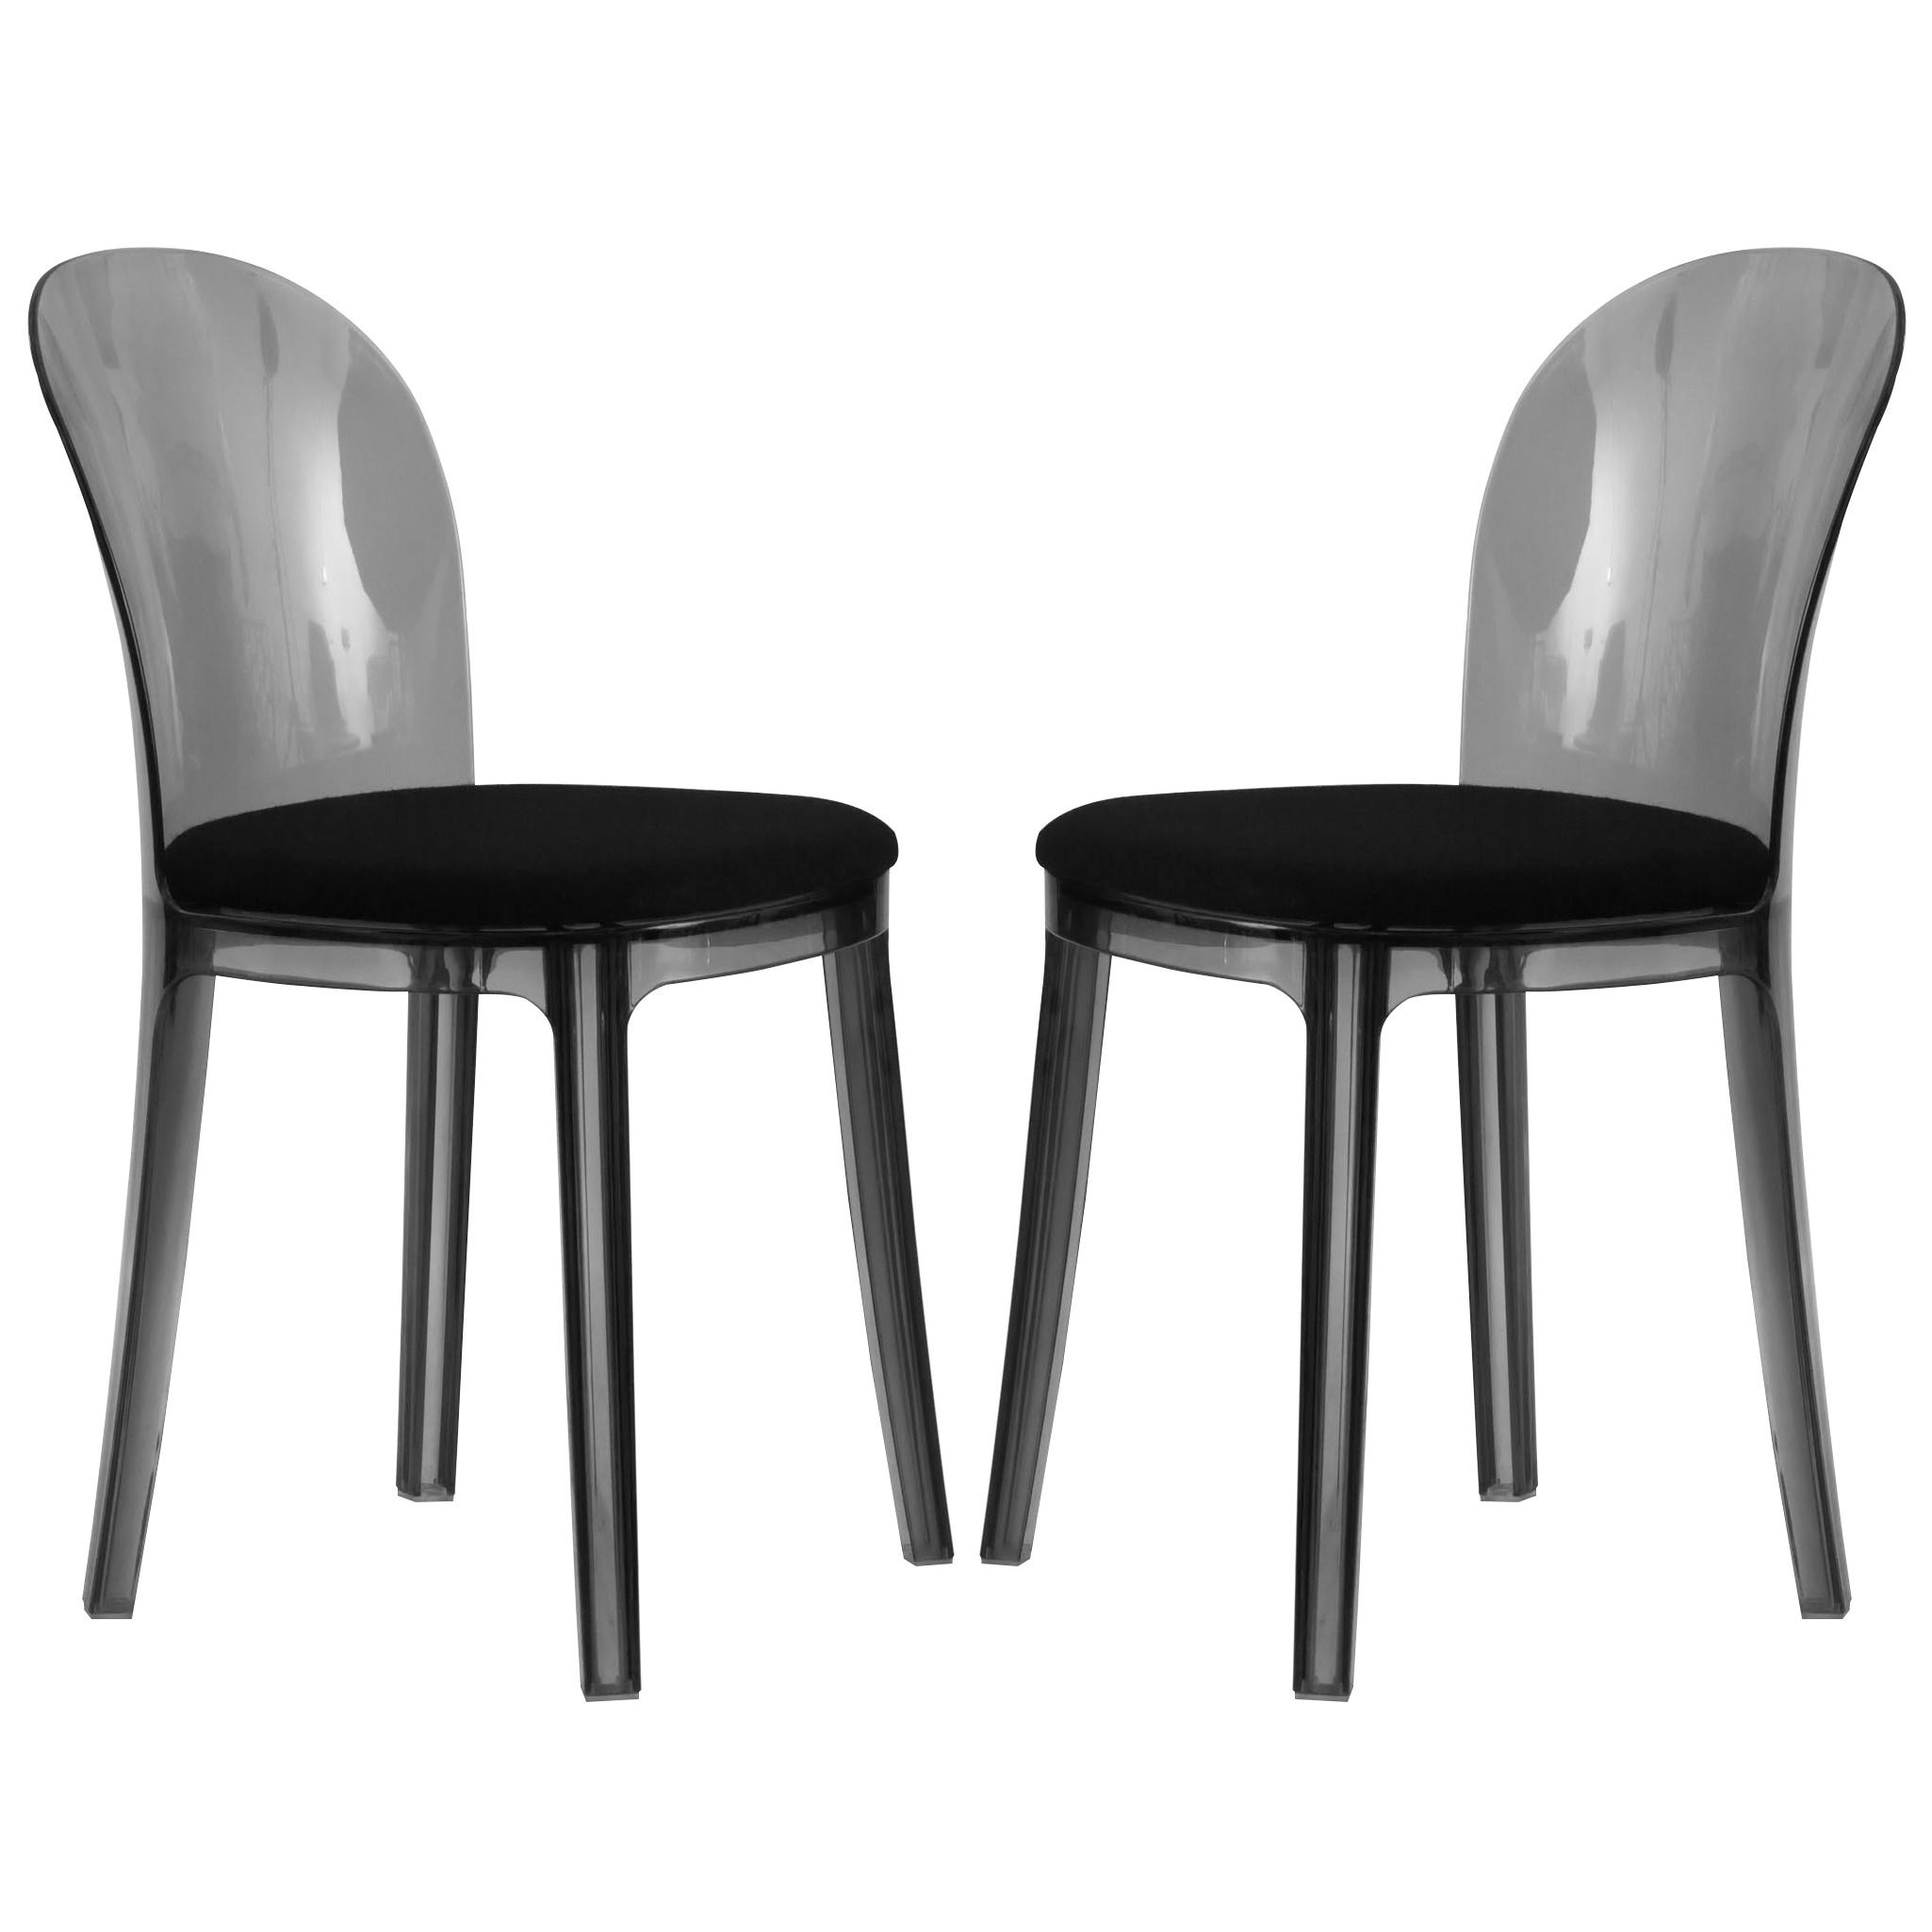 The Twilight Black Dining Chair Is Manufactured From Strong And Very Sy Smoked Polycarbonate Acrylic With A Comfortable Seat Pad